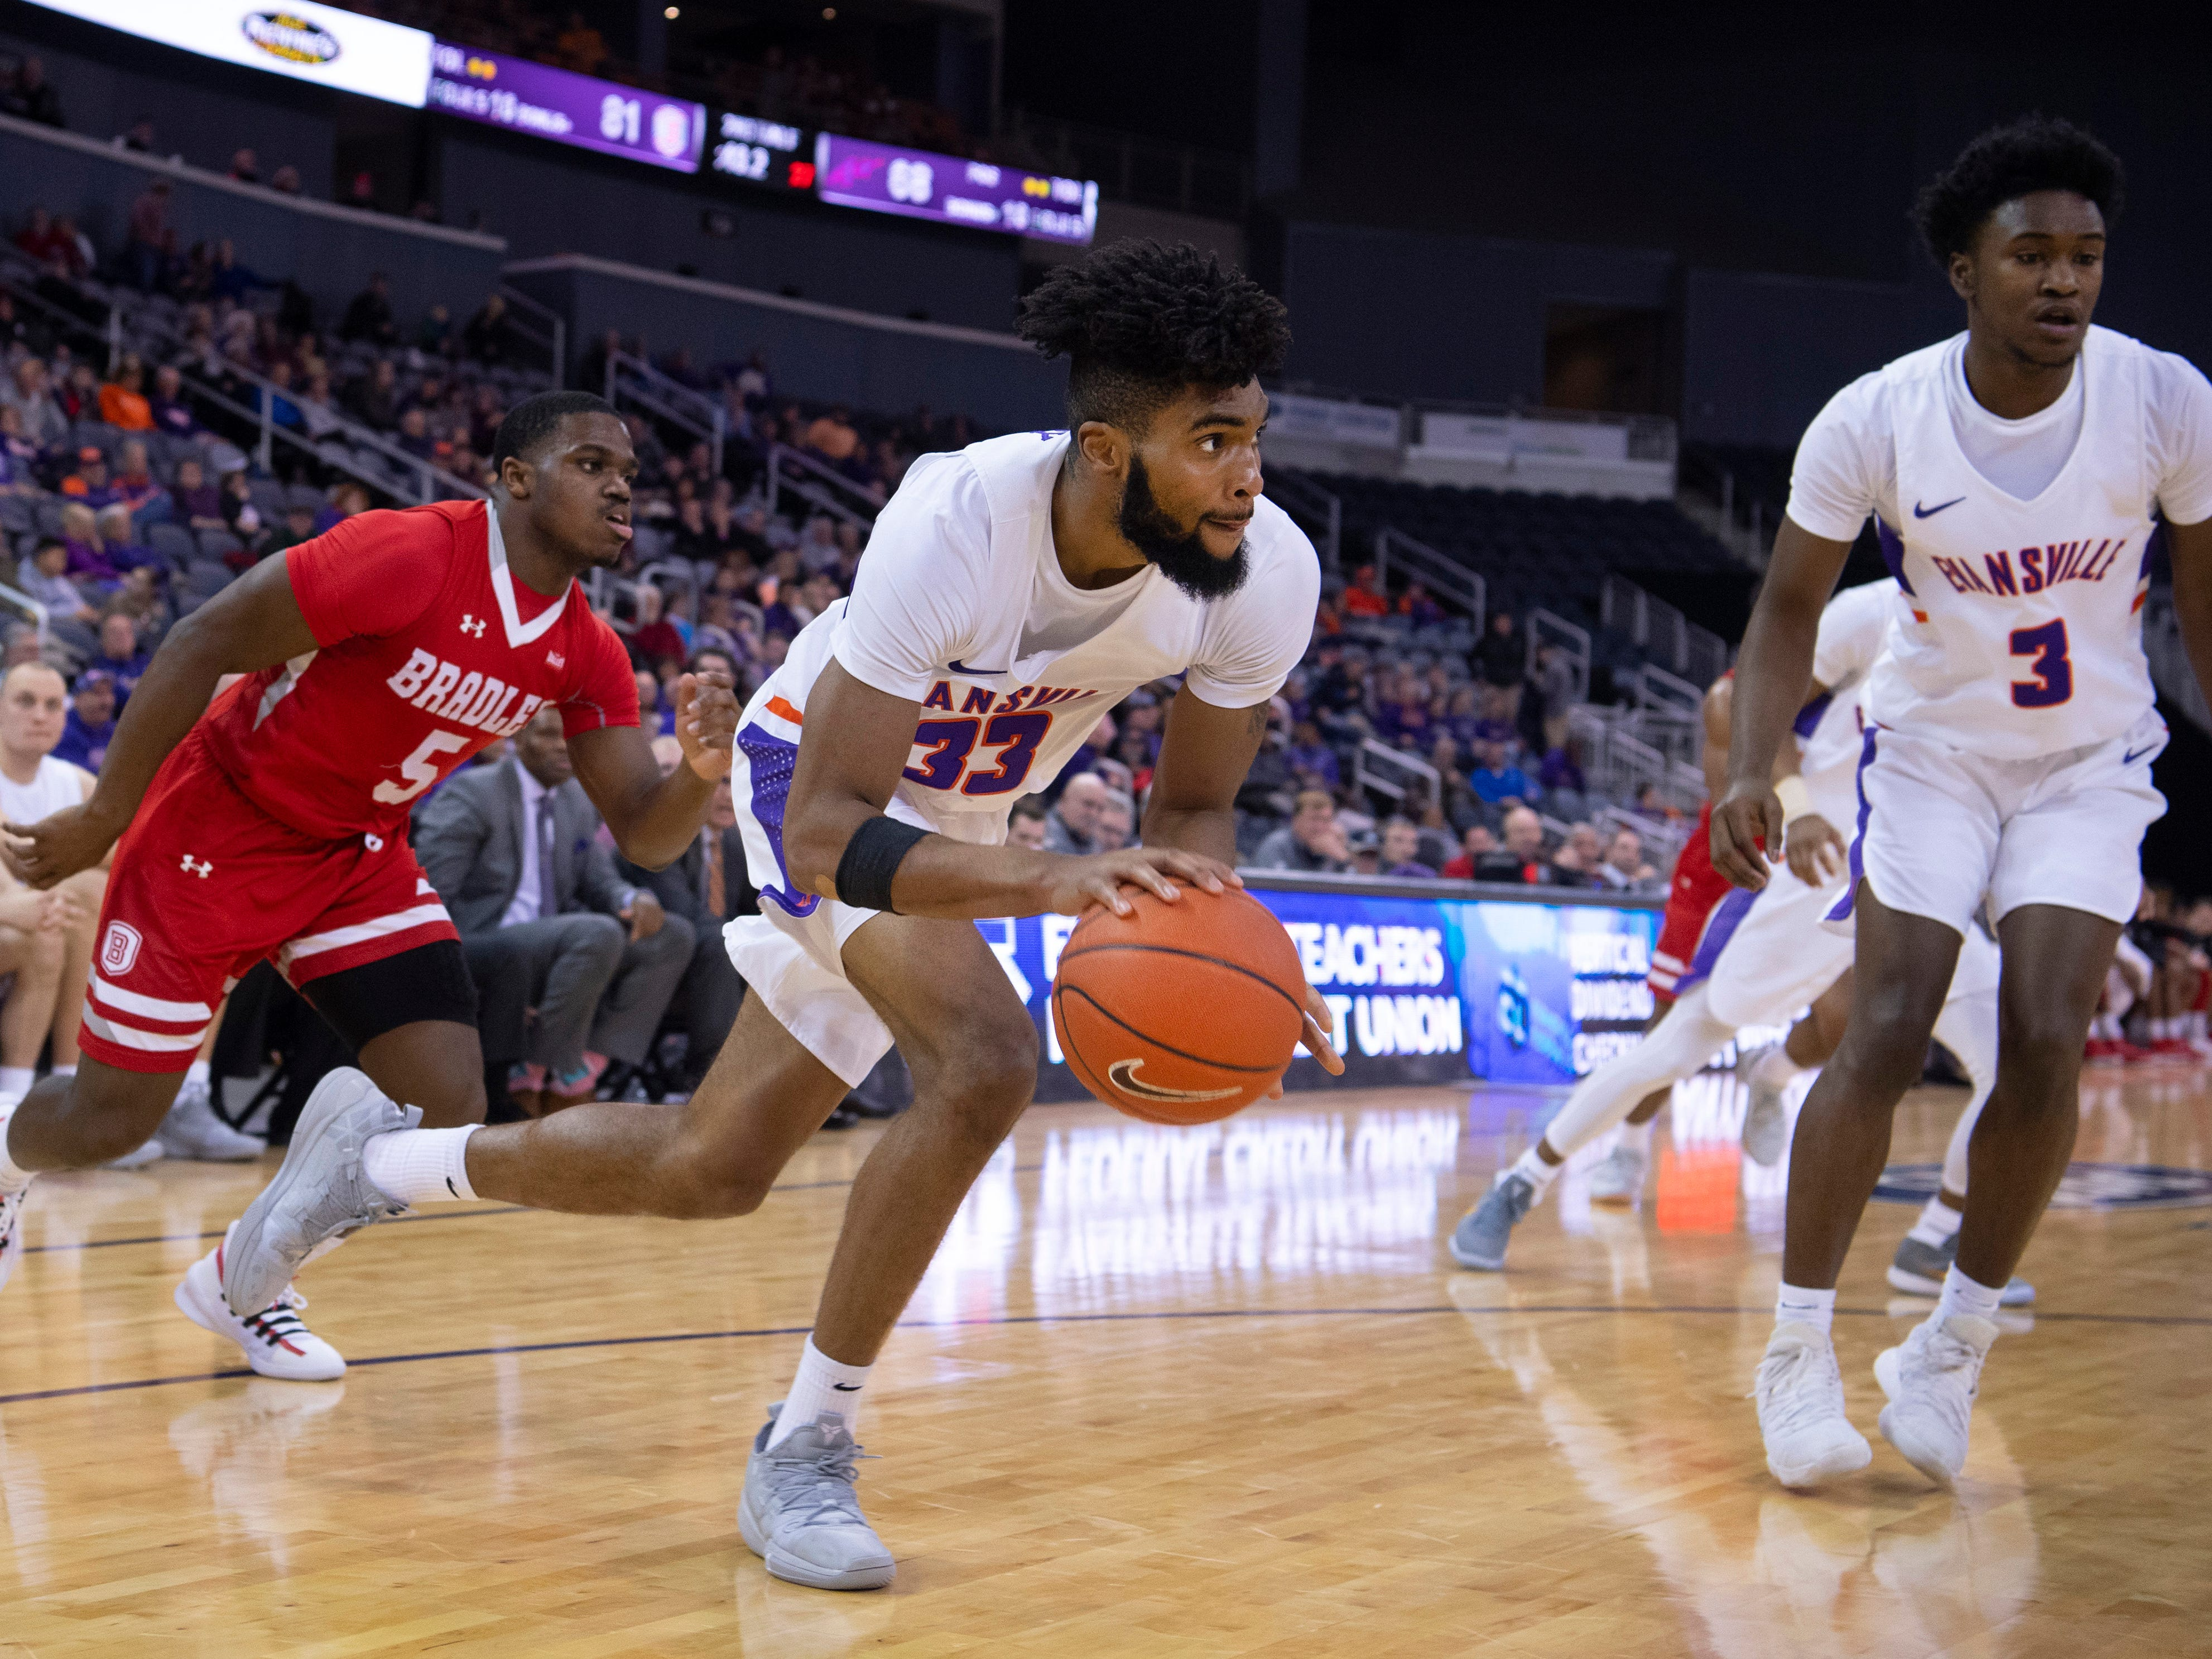 Evansville's K.J. Riley (33) drives to the basket for two points after making a steal against Bradley during their game at the Ford Center Wednesday night.